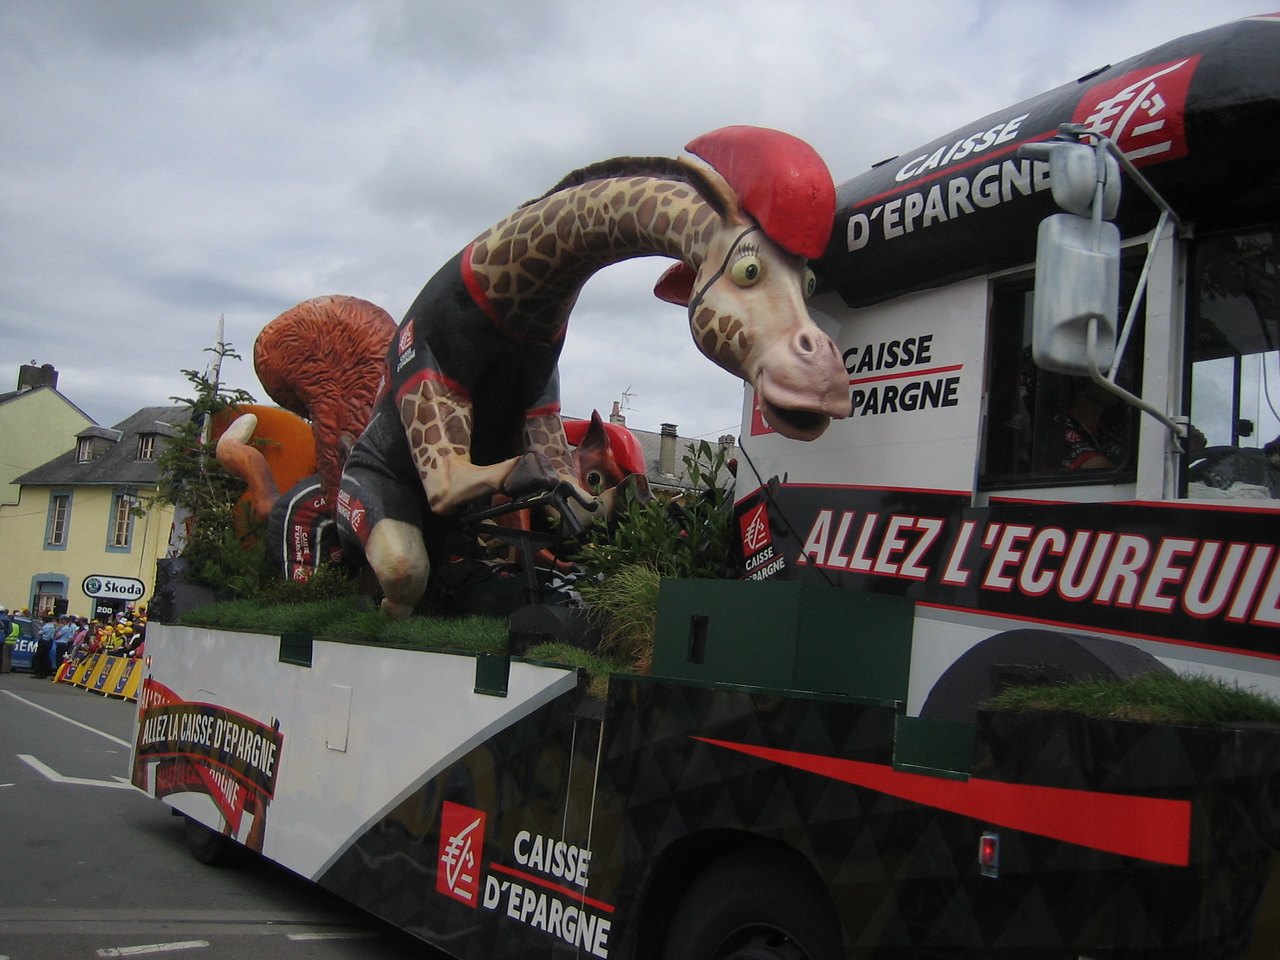 The Caisse D'epargne cycling giraffe?